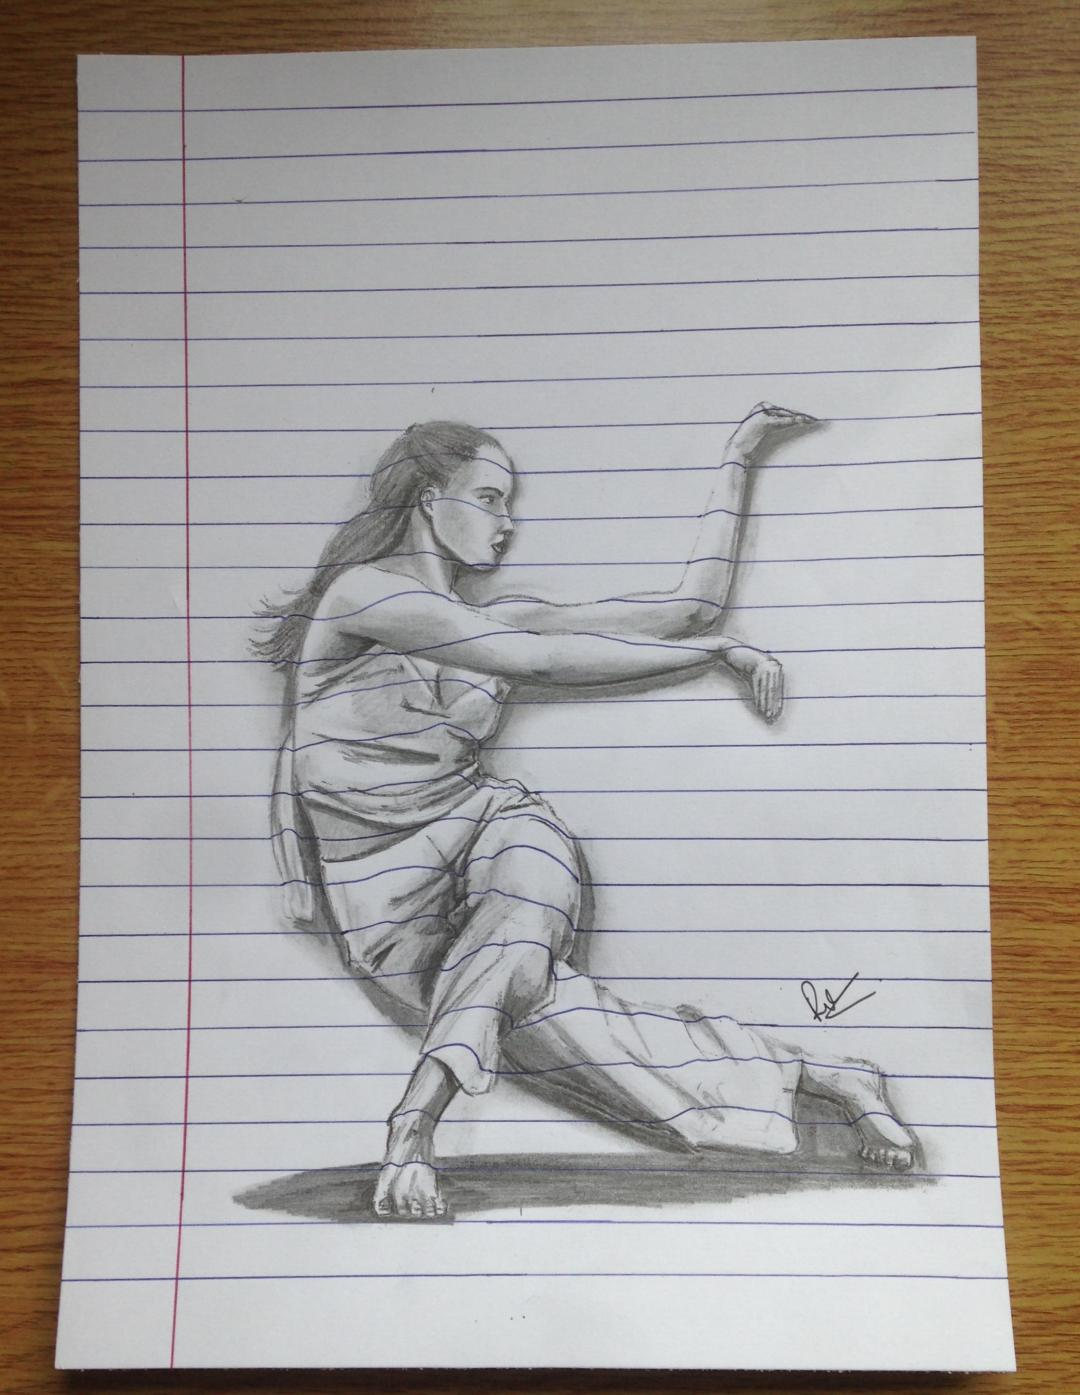 A lady practicing a kung fu form with good focus. A pencil sketch on lined paper which is a 3D illusion.